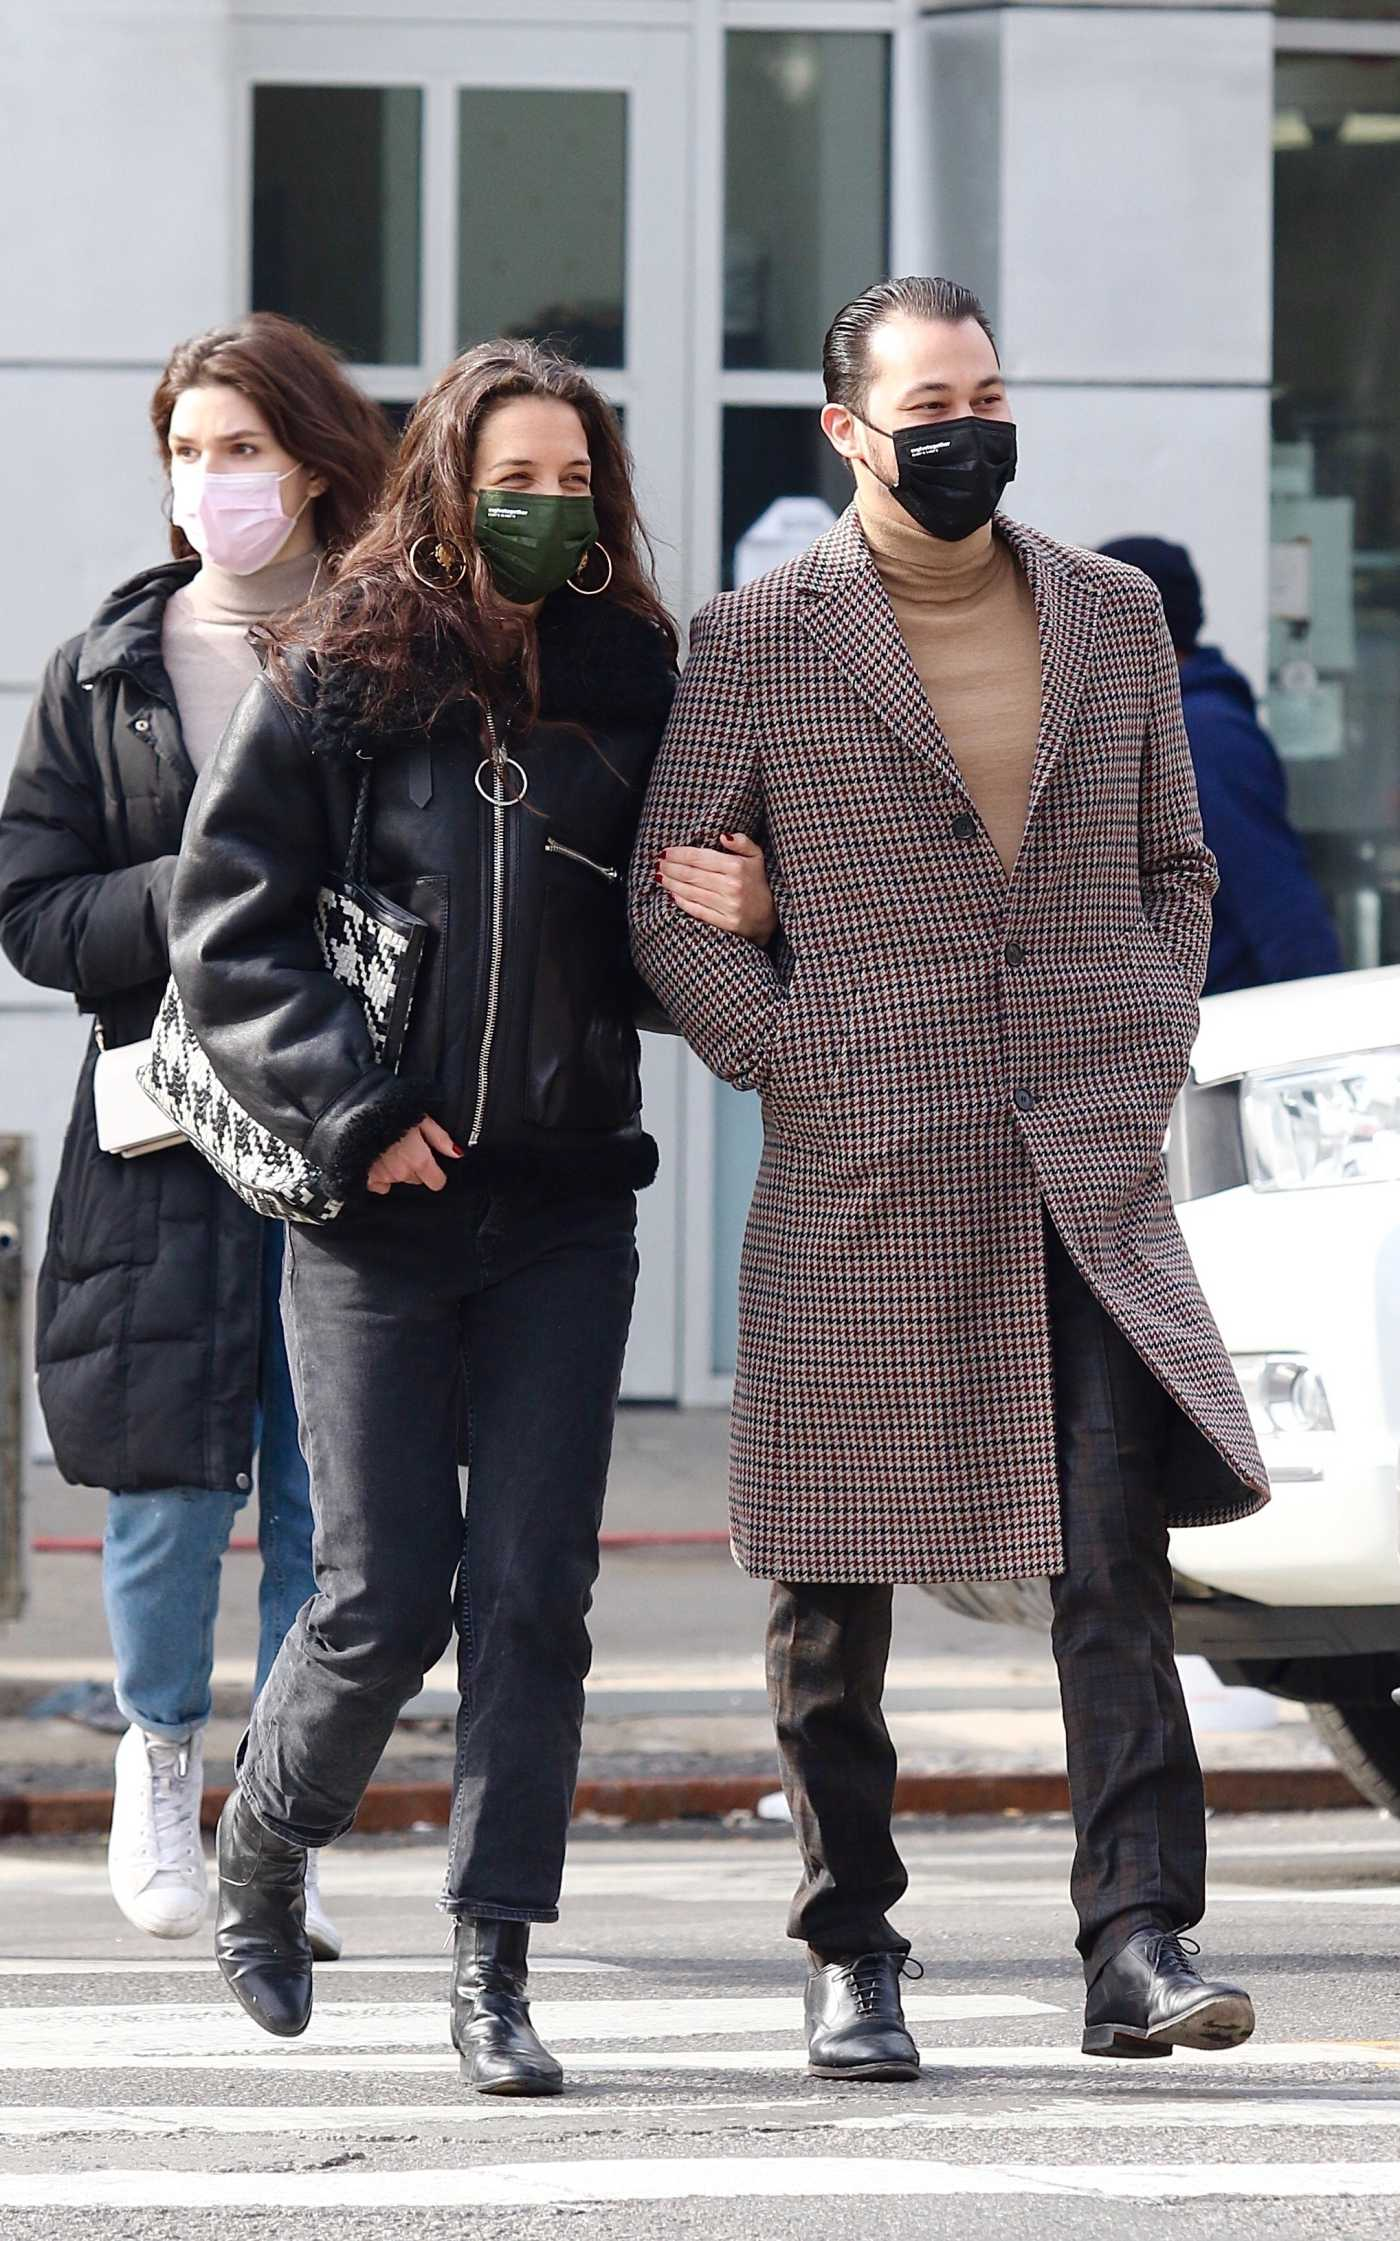 Katie Holmes in a Black Jacket Was Seen During a Romantic Stroll Out with Emilio Vitolo Jr. in New York 02/26/2021